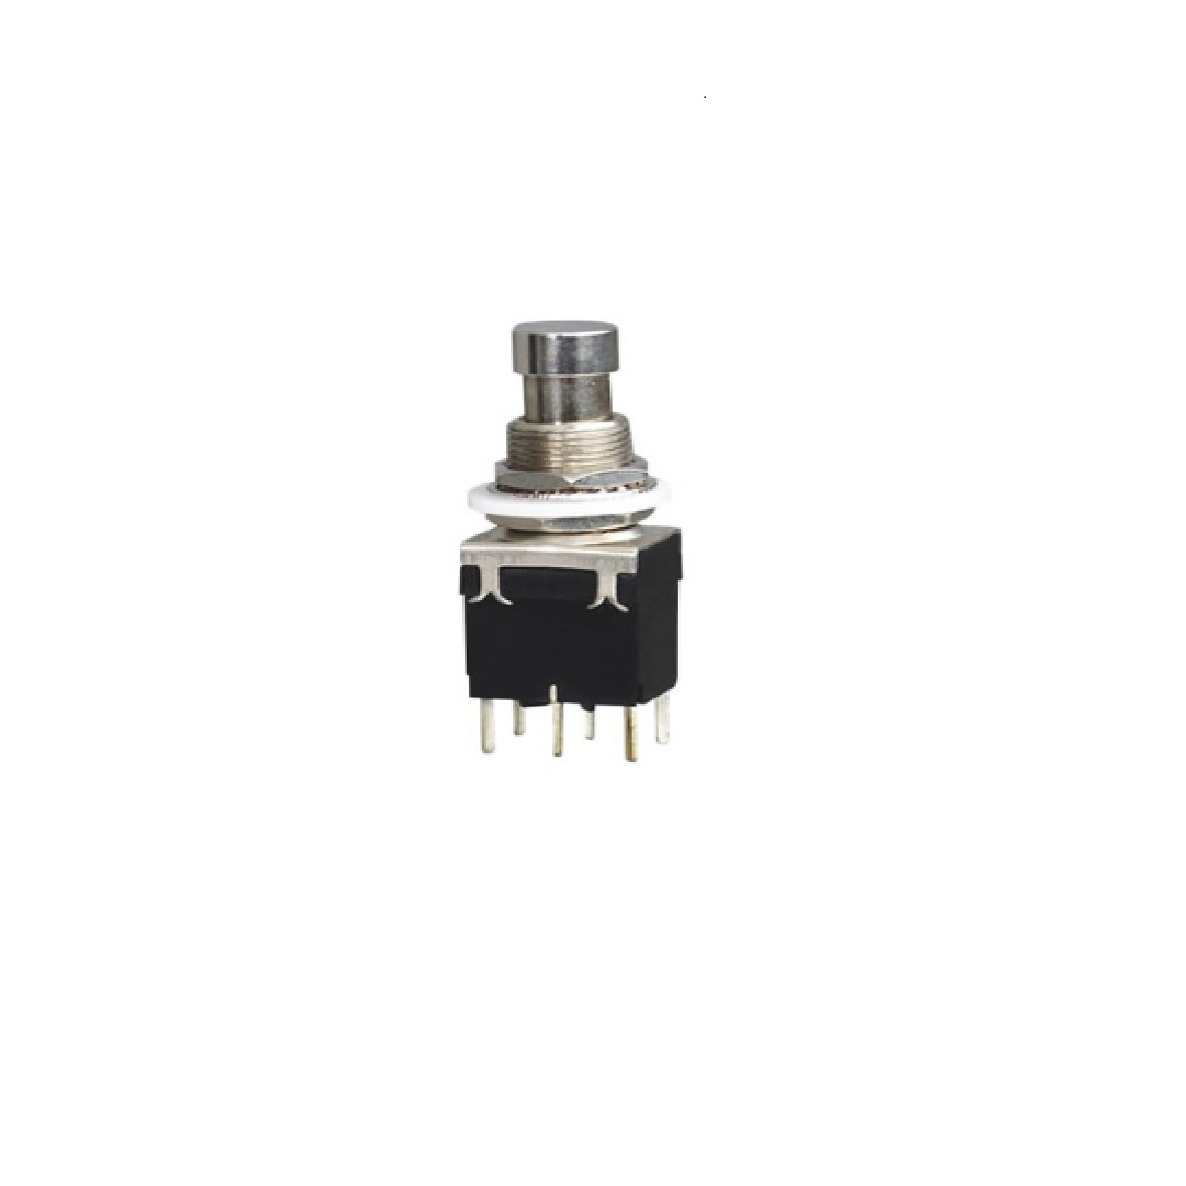 3pcs dpdt momentary on on pushbutton switches 6pin 12mm guitar effect push button [ 1186 x 1186 Pixel ]